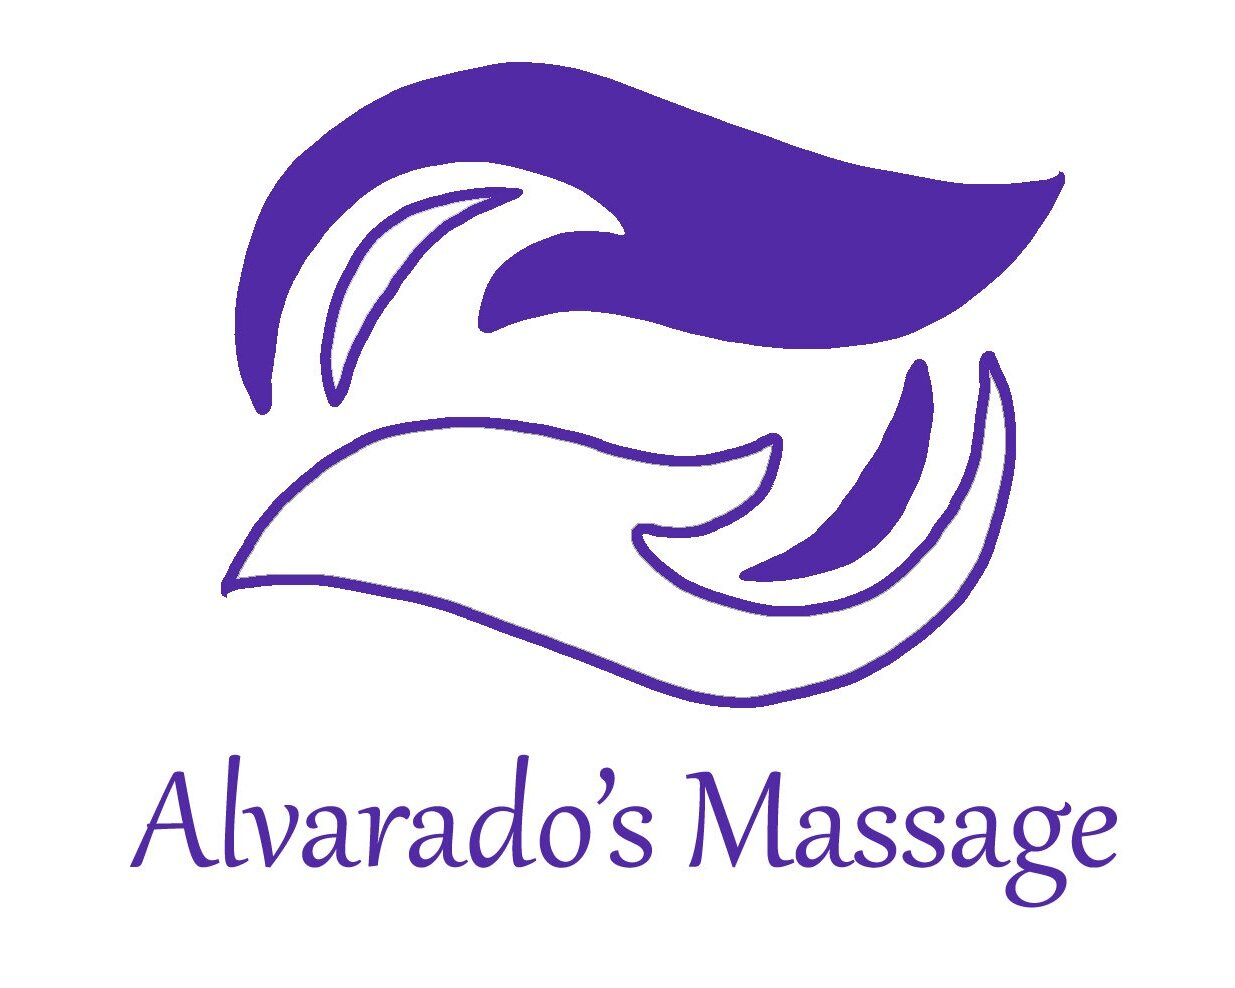 The Majority Of People That Use Massage Services In The Washington Area Know About The Seattle Bo ...